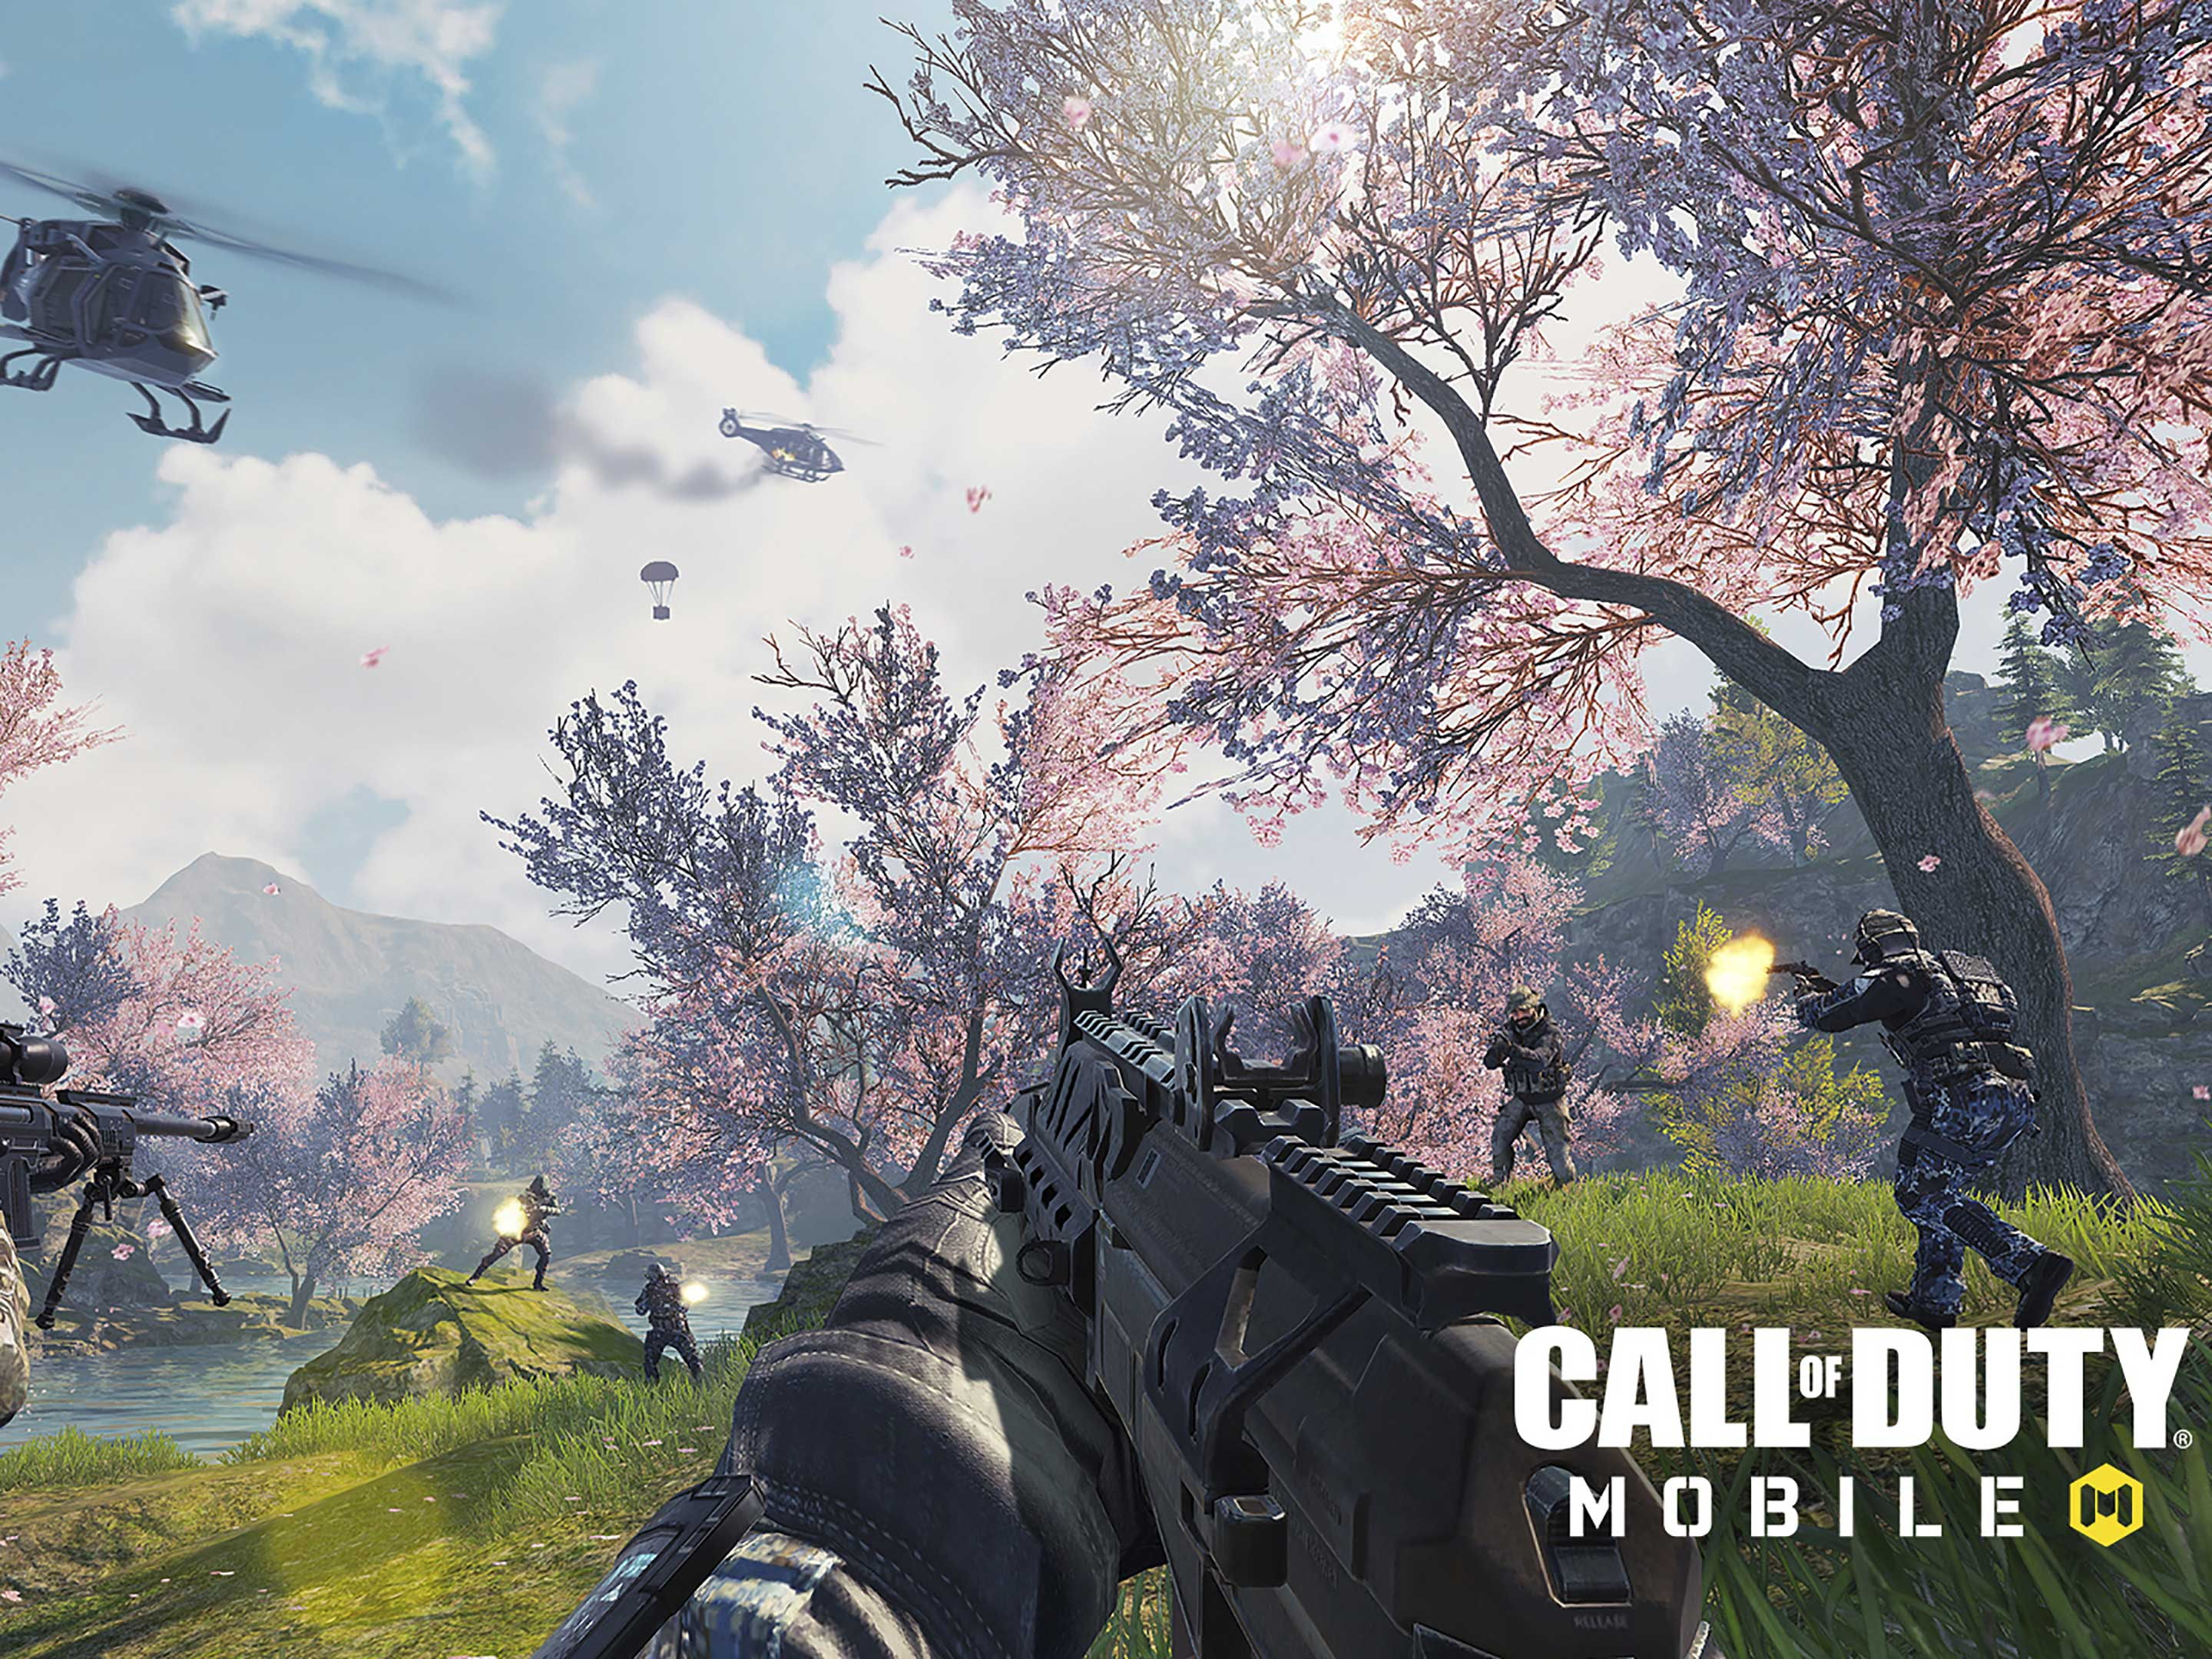 Call of Duty: Mobile battle royale